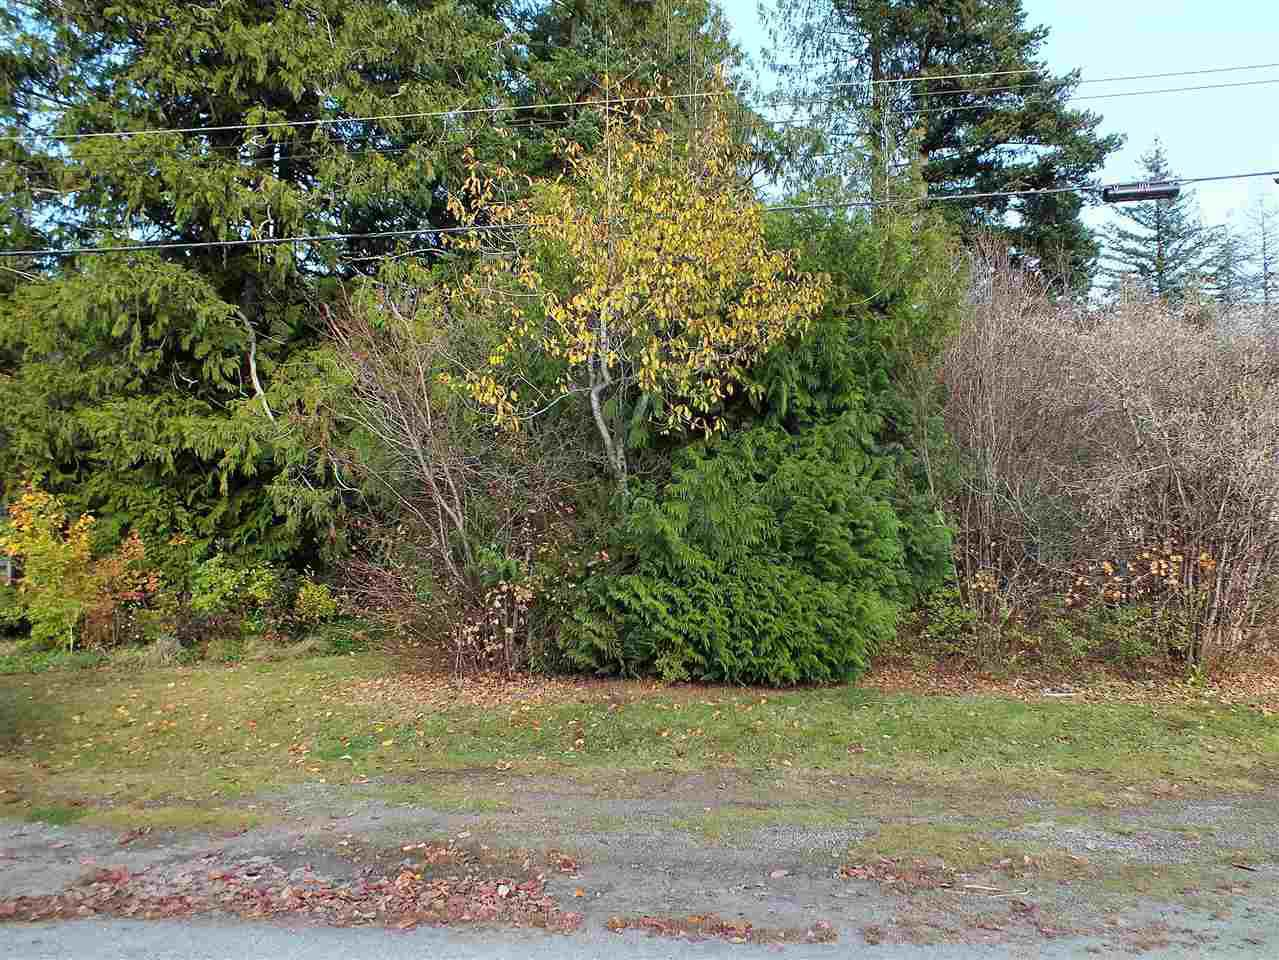 Main Photo: 411 7TH Avenue in Hope: Hope Center Land for sale : MLS®# R2418401